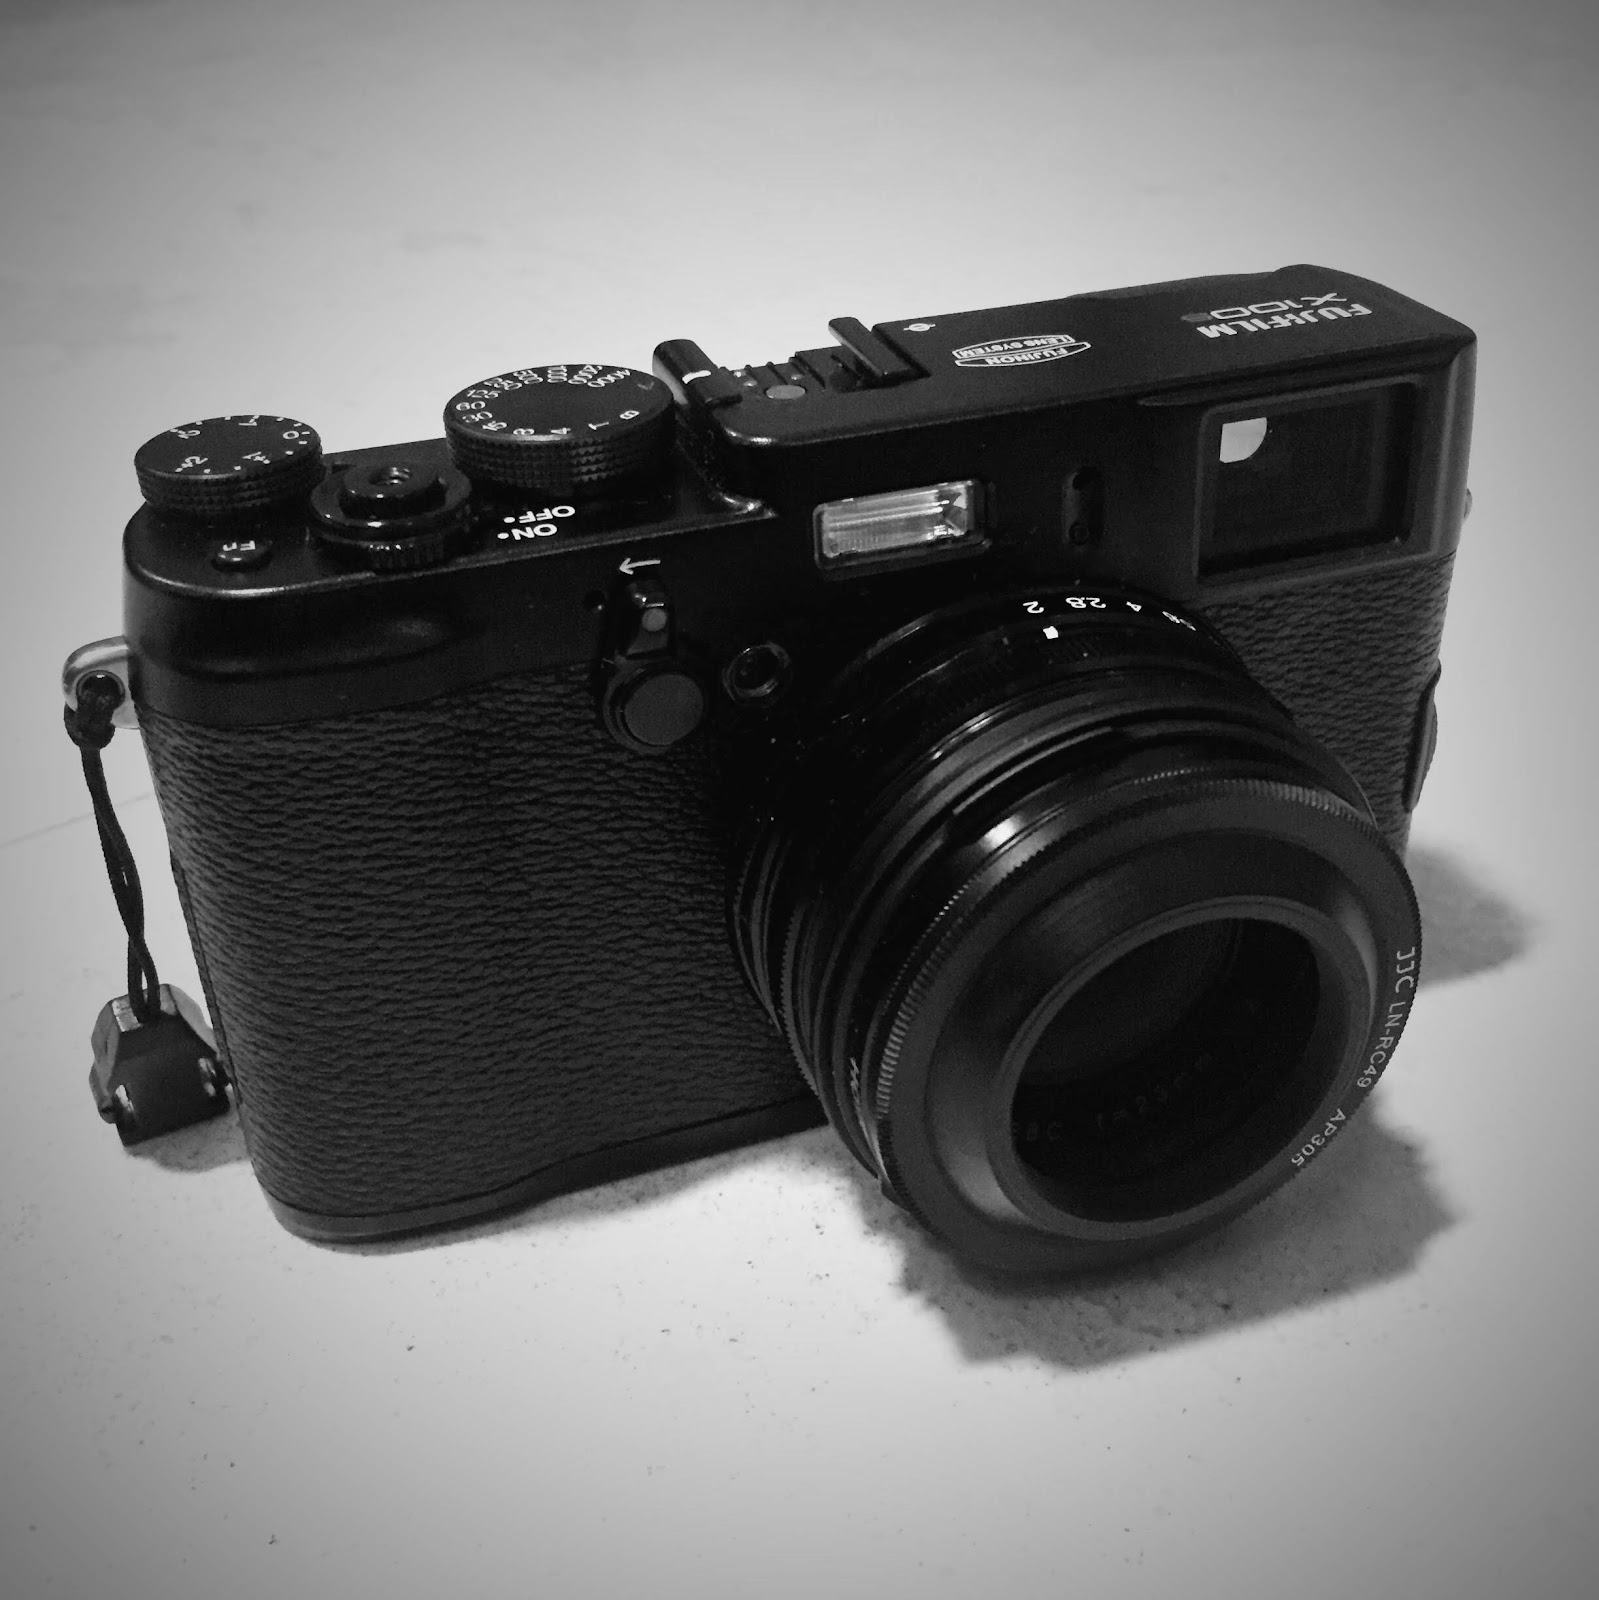 Better Family Photos: Best Lens Hood for the Fuji X100, X100S, and X100T